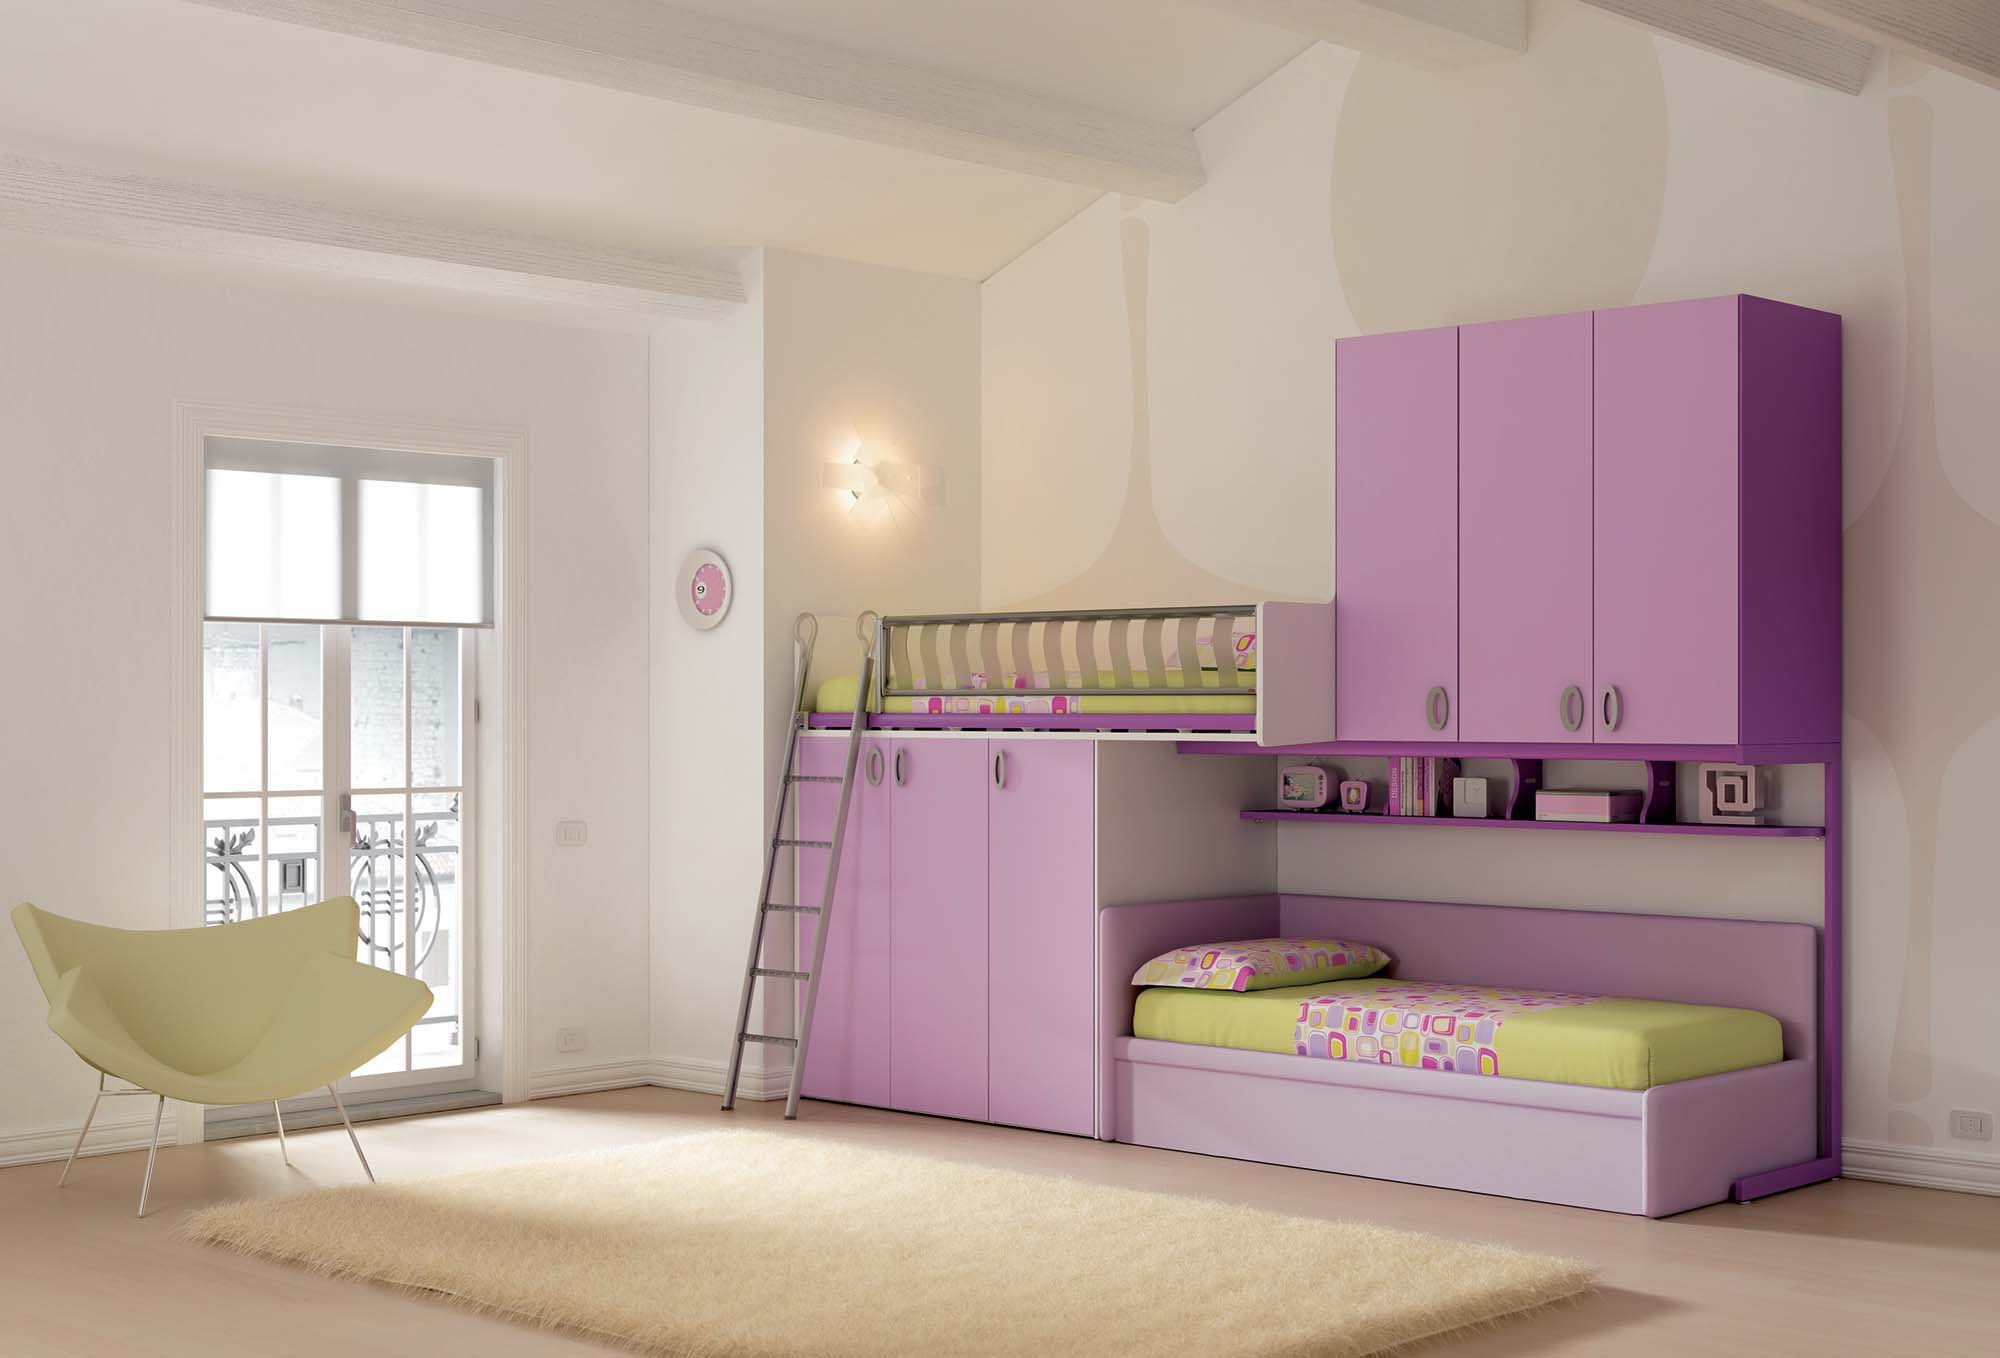 Chambre lit superpos 32 chambre ado lit superpose la rochelle salon incroyab - Lit supperpose enfant ...